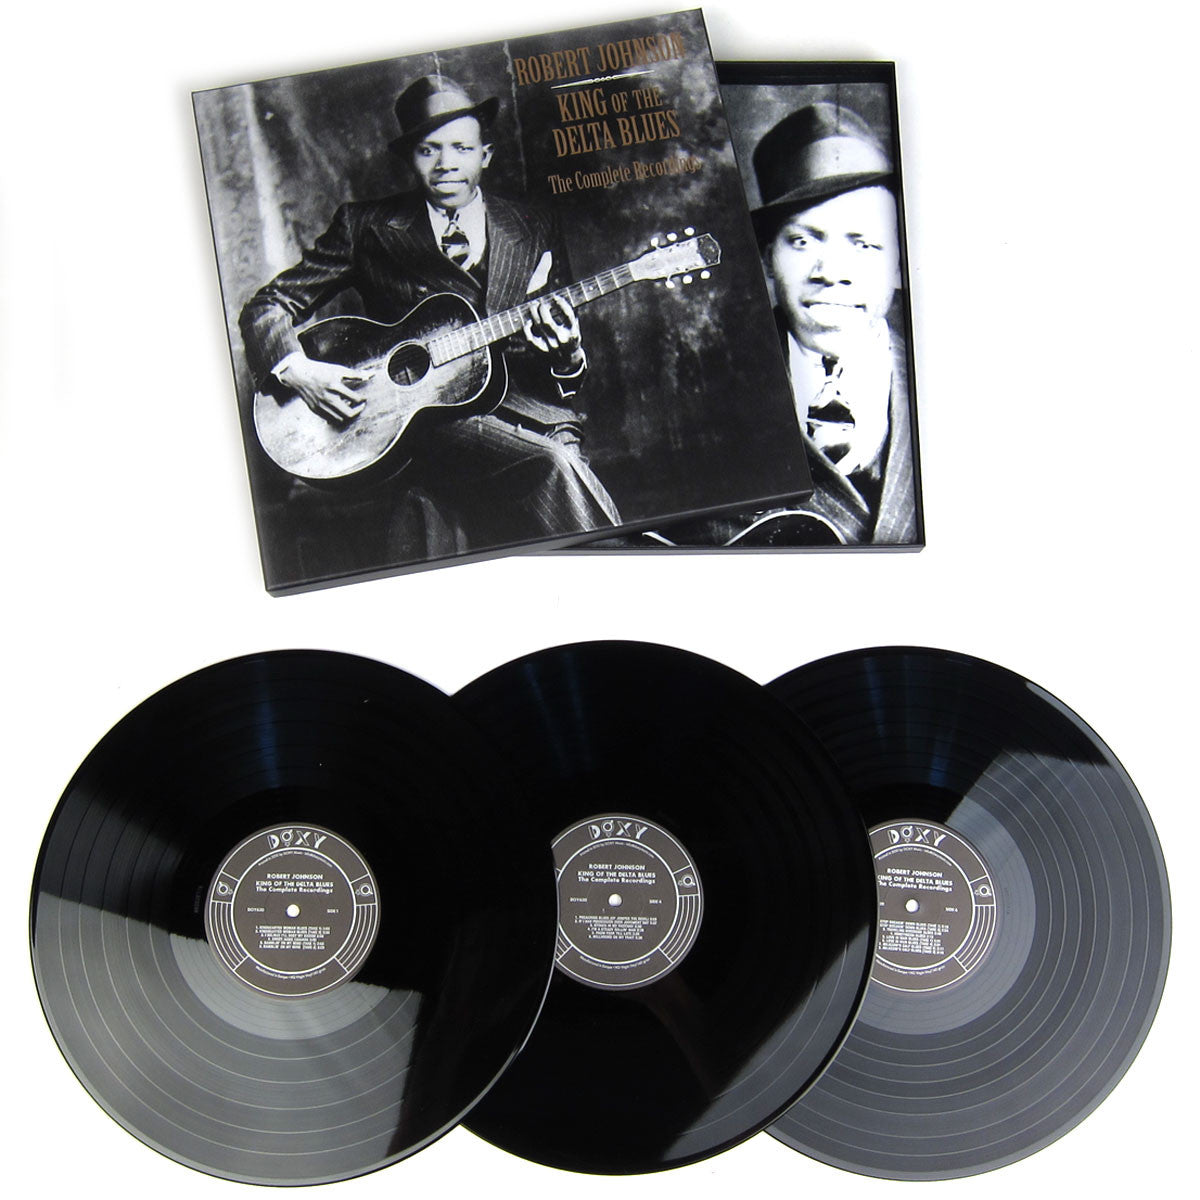 Robert Johnson: King Of The Delta Blues - The Complete Recording Vinyl 3LP Boxset